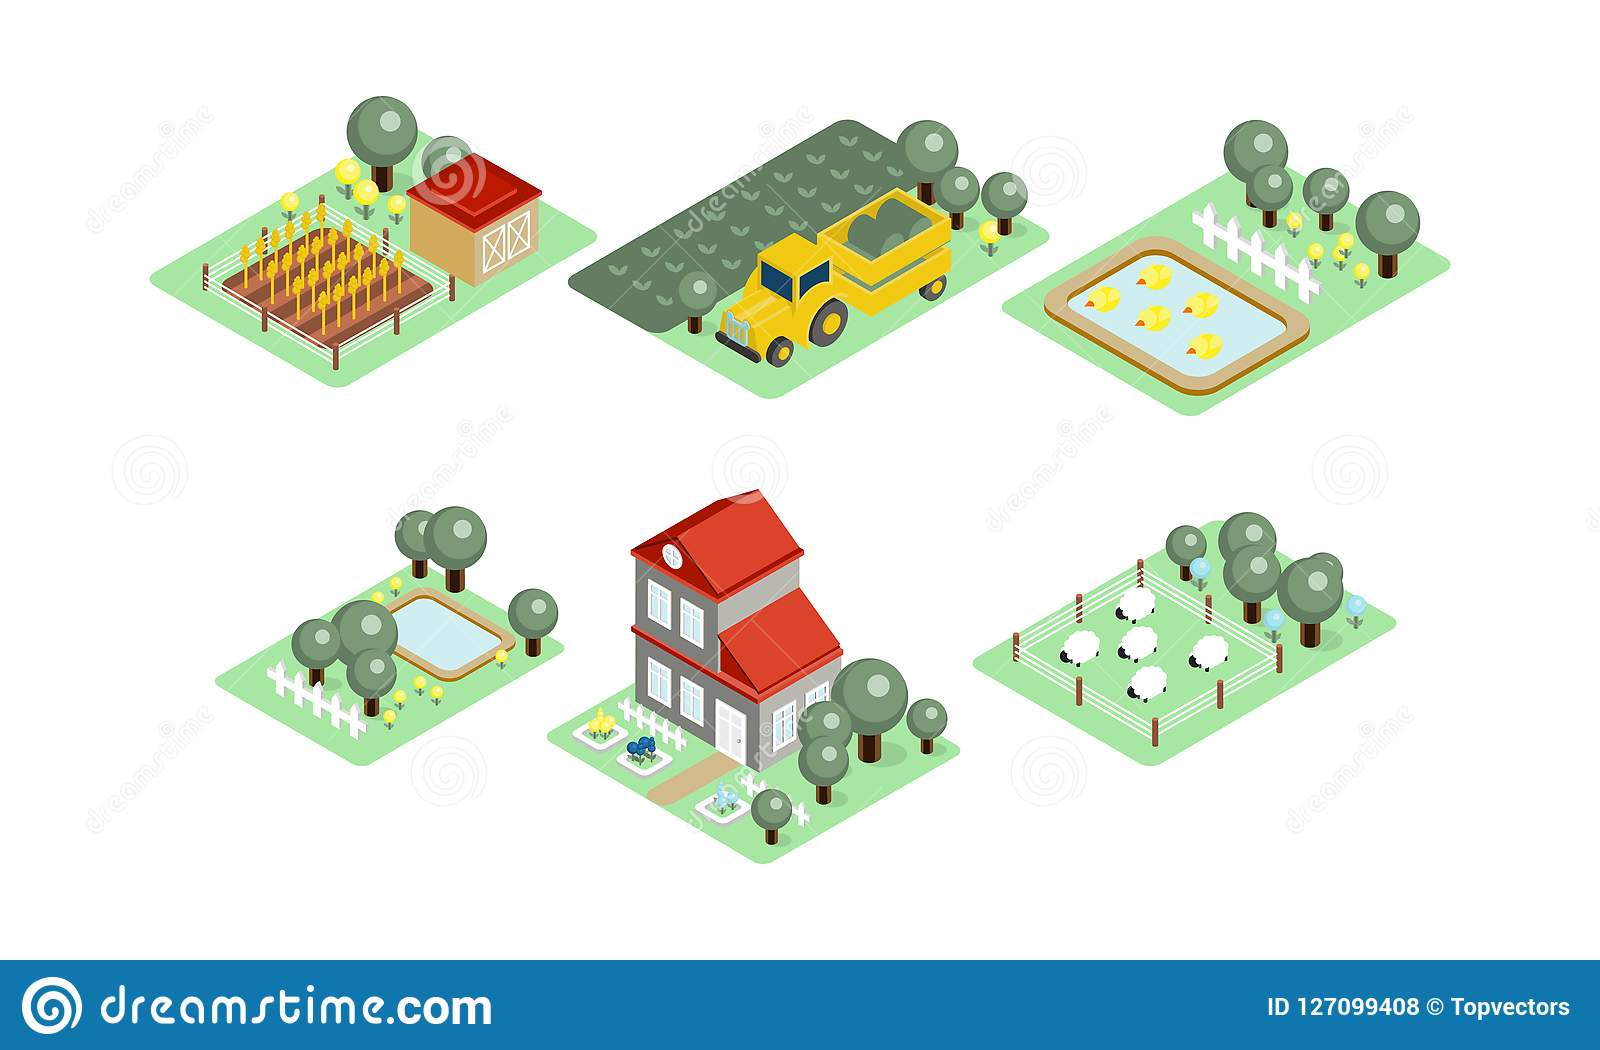 Collection of farm icons in modern 3d style fields with harvest grazing sheep house yards with trees and ponds colorful isometric icons